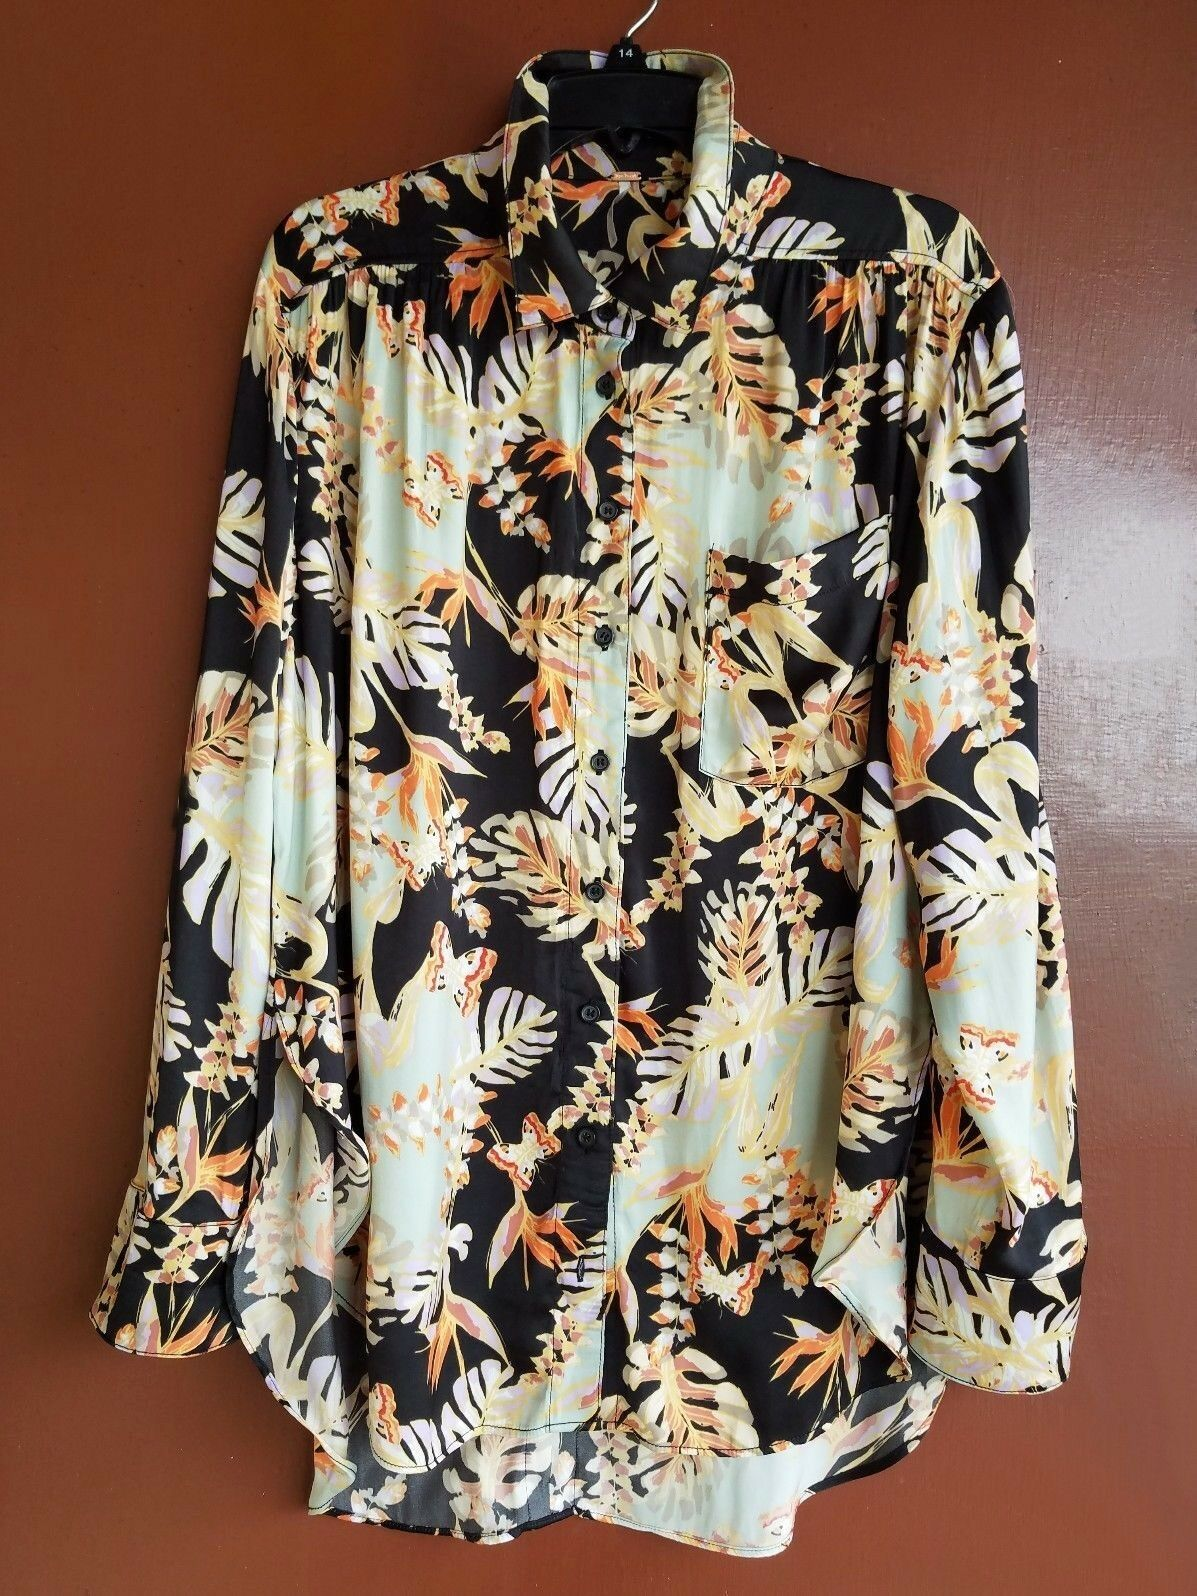 NWT FREE PEOPLE TROPICAL BUTTON DOWN MULTI COLOR LONG SLEEVE L TOP